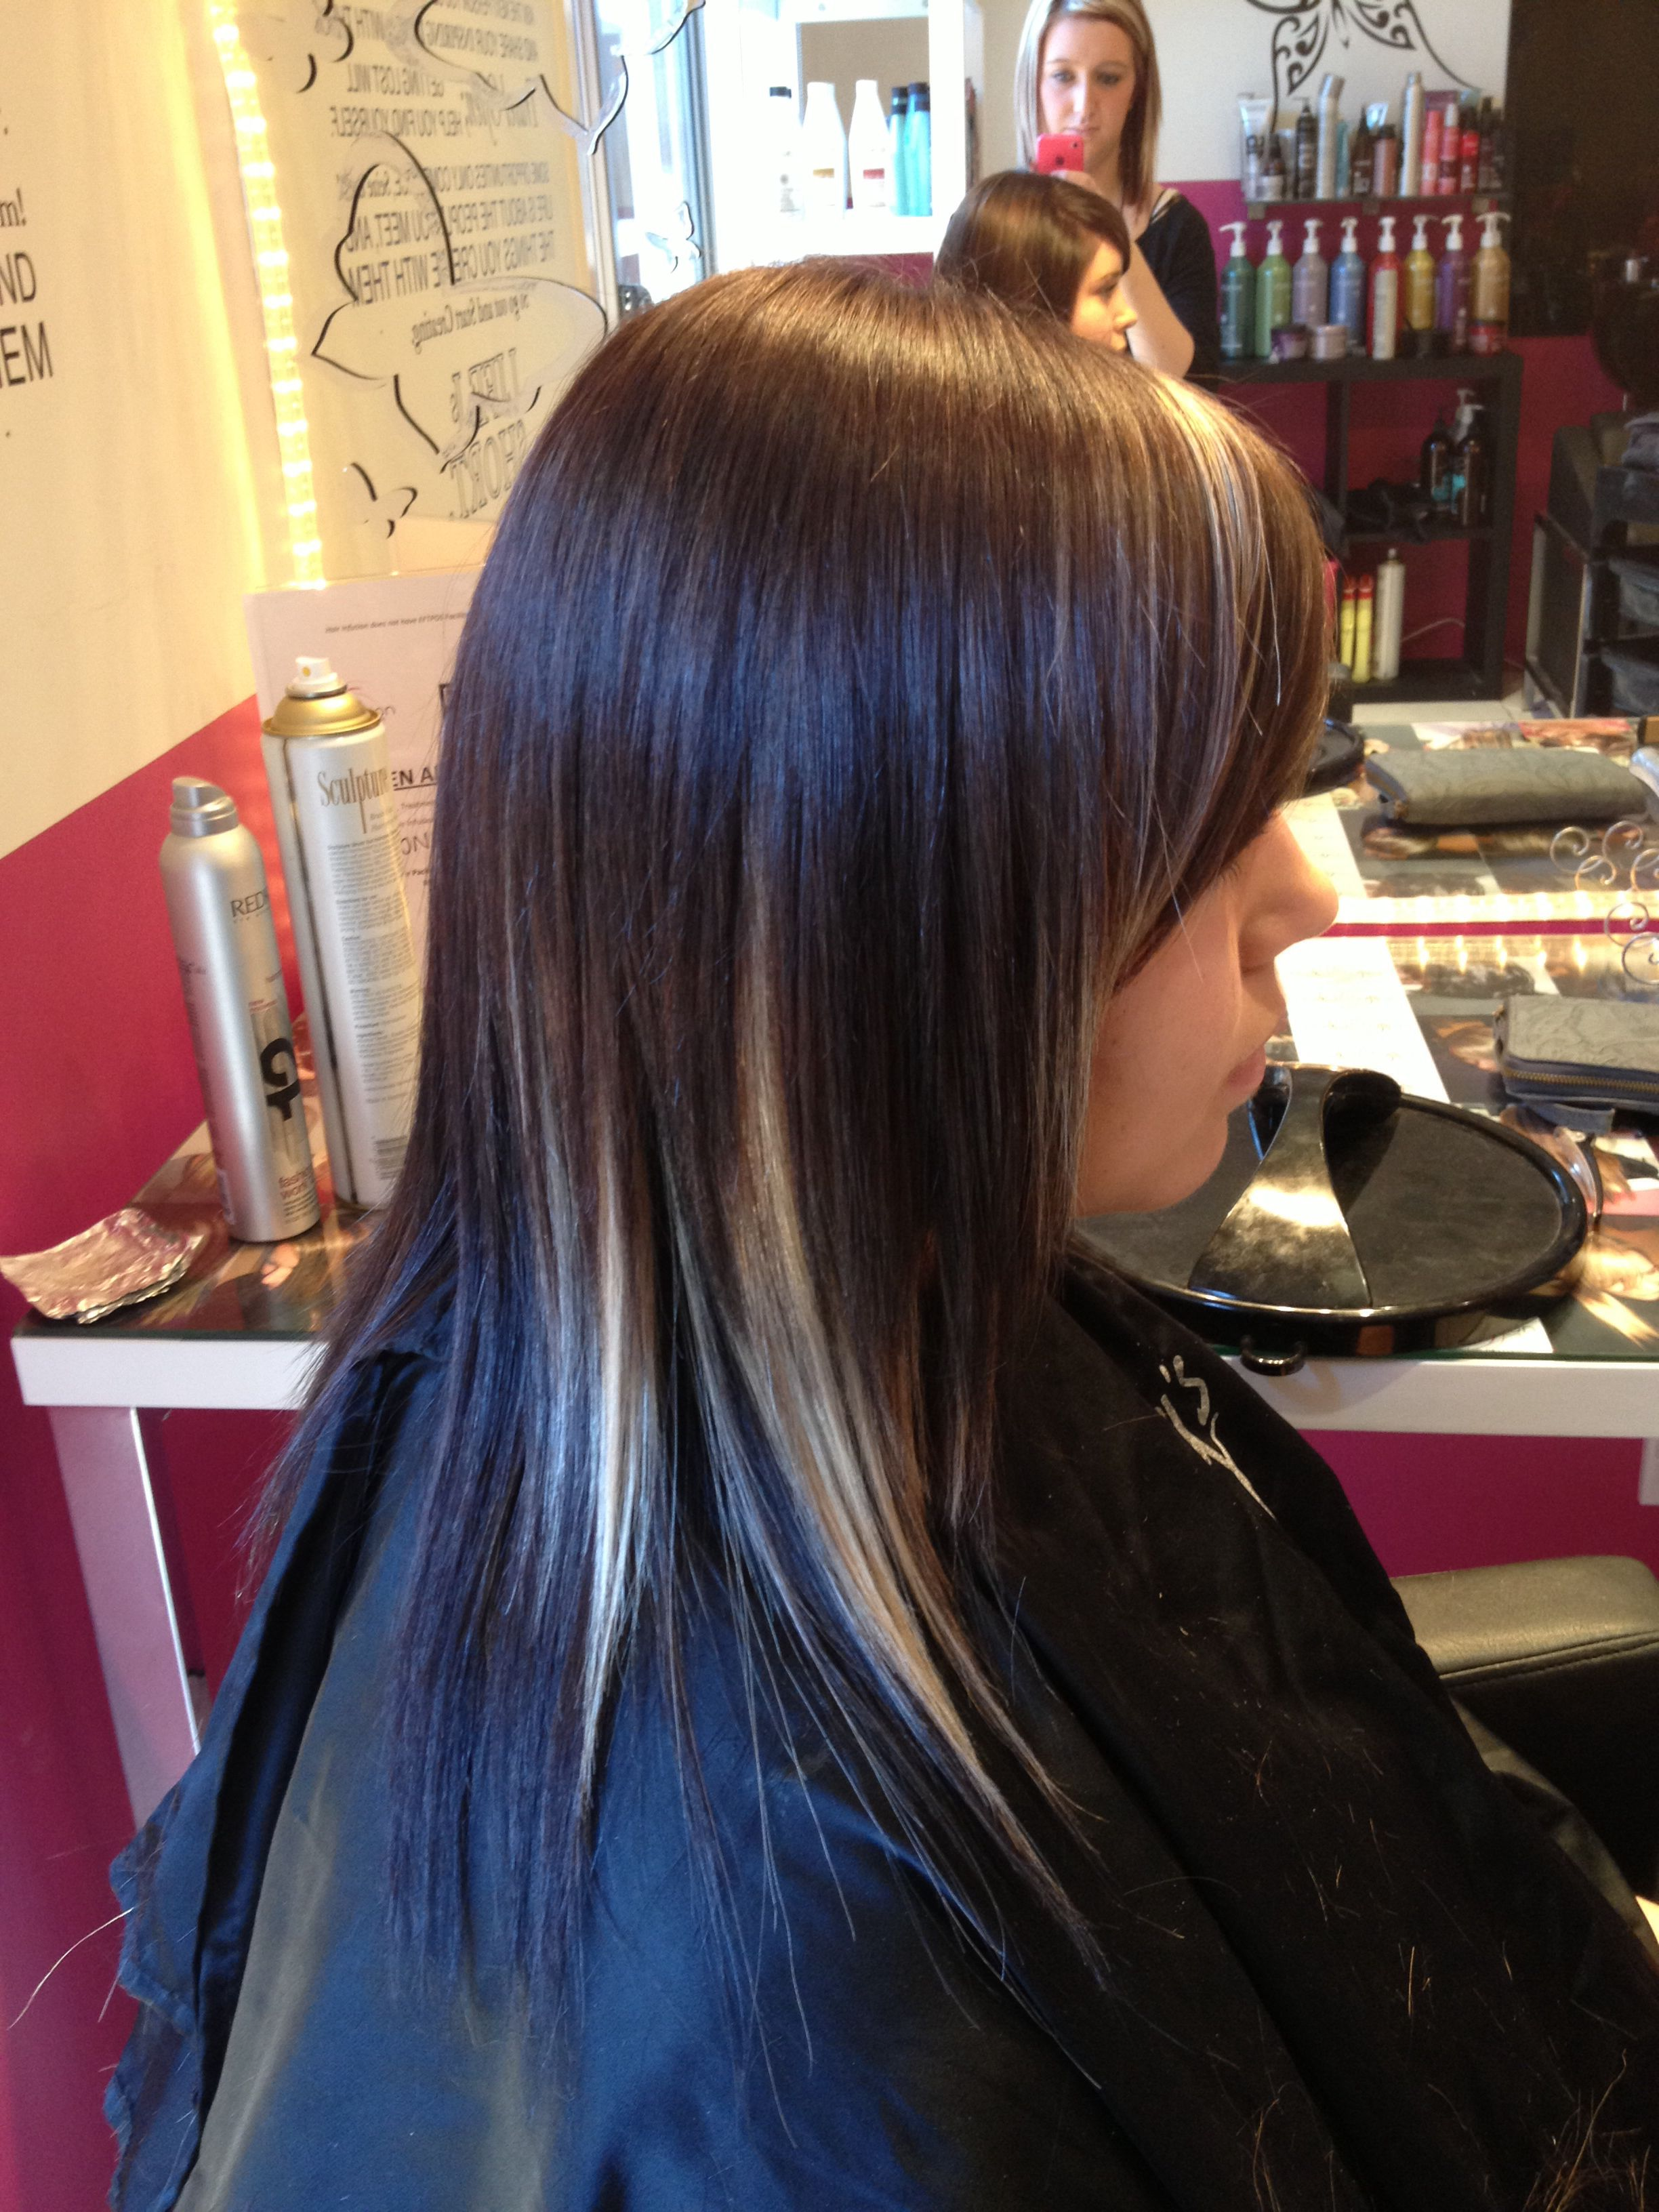 Short glorious black brown hairstyles with blonde highlights advise